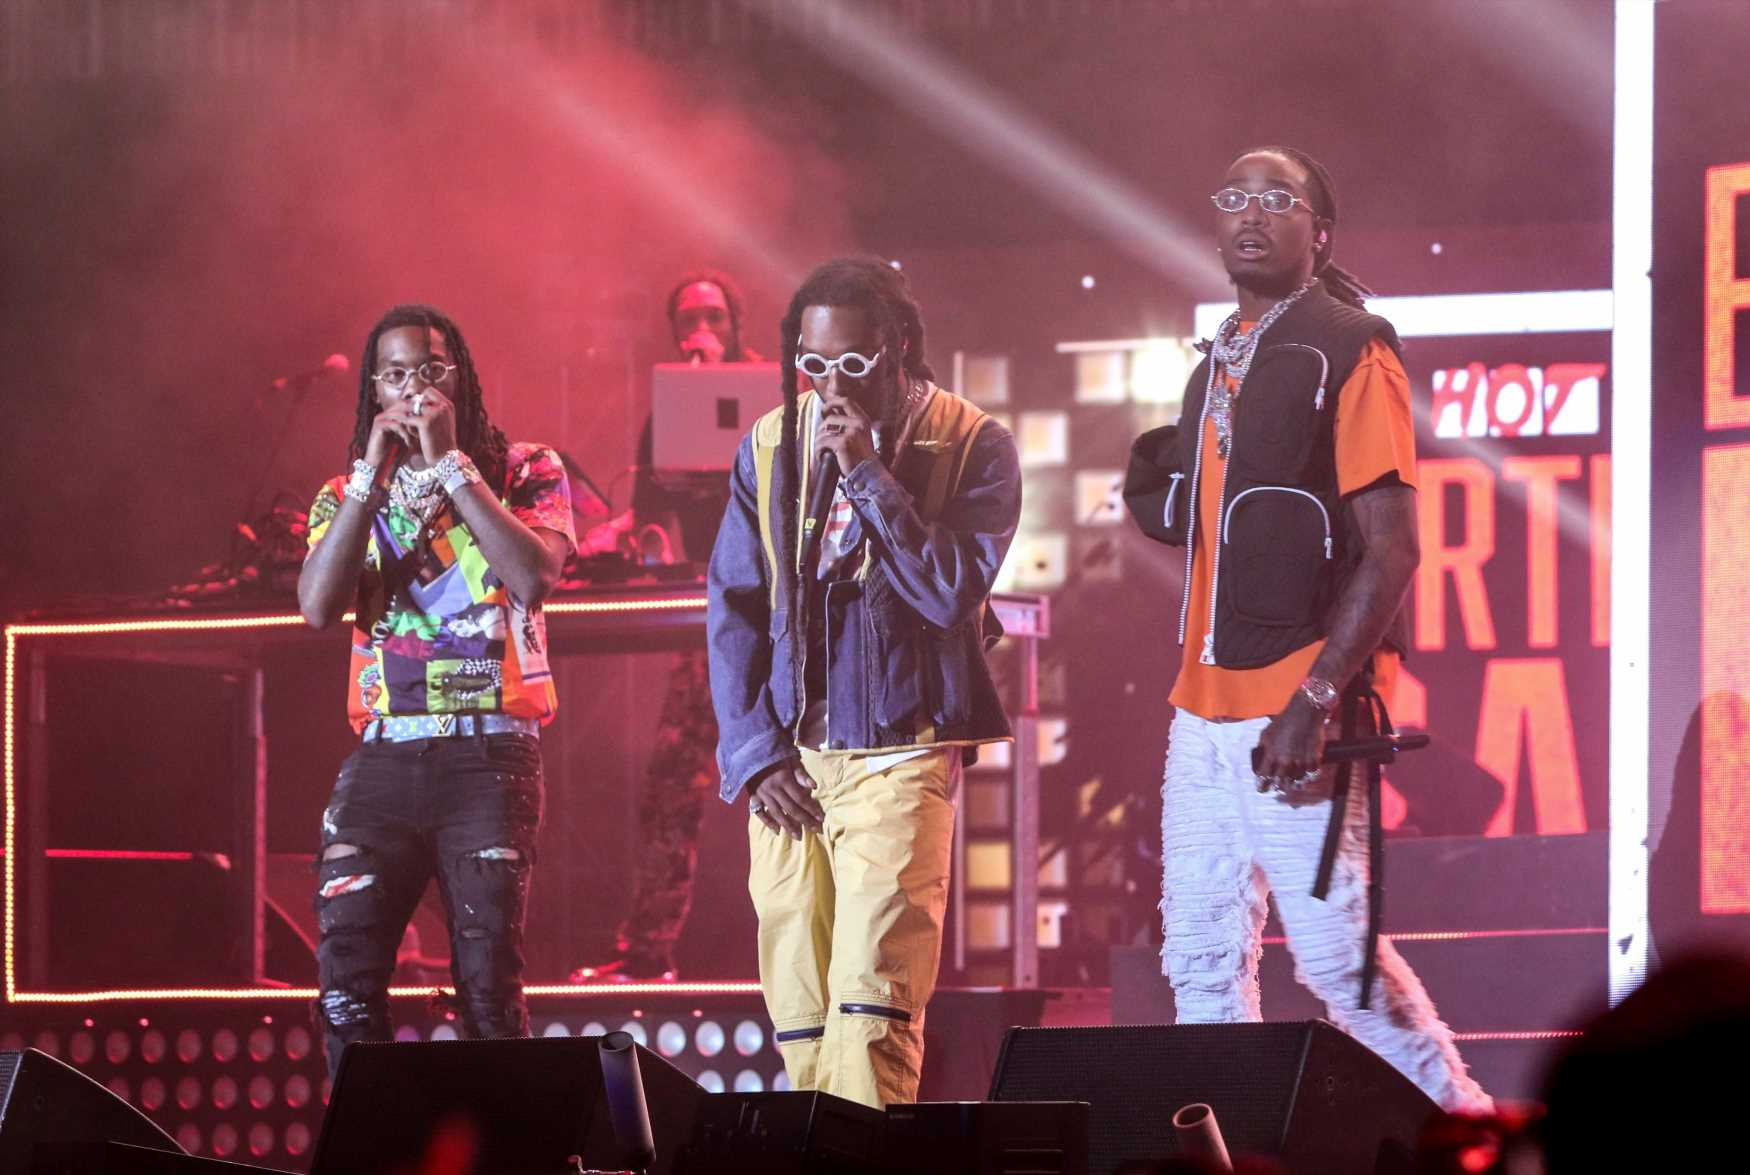 Migos, Future, G-Eazy Lead Rolling Loud Bay Area 2019 Lineup